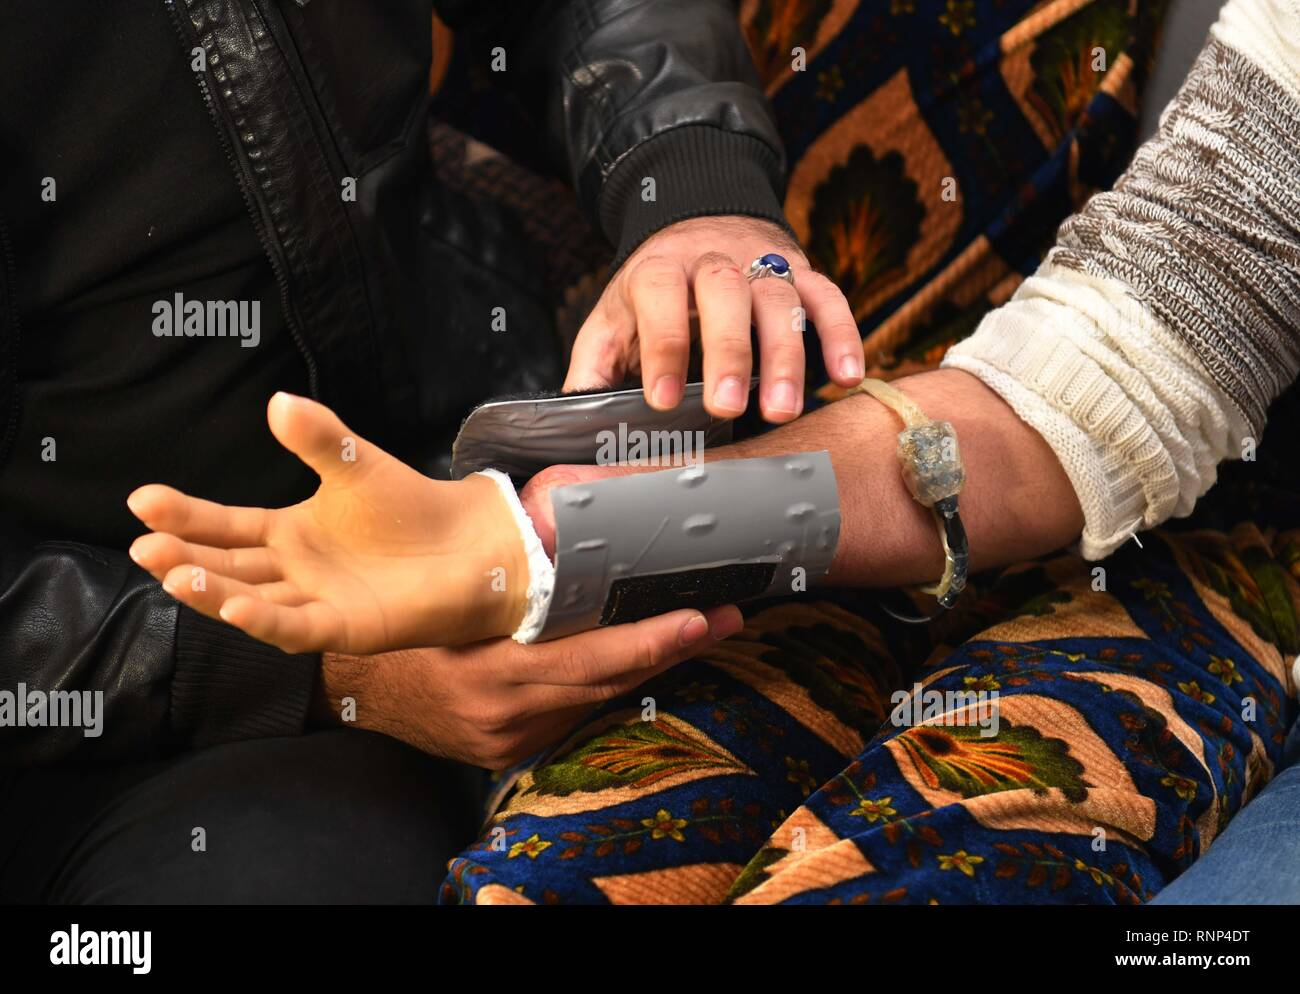 (190220) -- HAMA, Feb. 20, 2019 (Xinhua) -- Ali Bakeer installs a prosthetic hand he created for an amputated military officer in Rabia of Hama province, central Syria, on Feb. 18, 2019. Ali Bakeer, a medical engineering student in Syria, has developed a prosthetic hand meant to help the disabled people who suffered injuries during the war. Born in the town of Rabia in the central province of Hama, the 22-year-old man, who is a third-year college student, said he had a strong interest in electronics as a boy. The idea of creating the prosthetic hand was driven by the needs of the injur - Stock Image